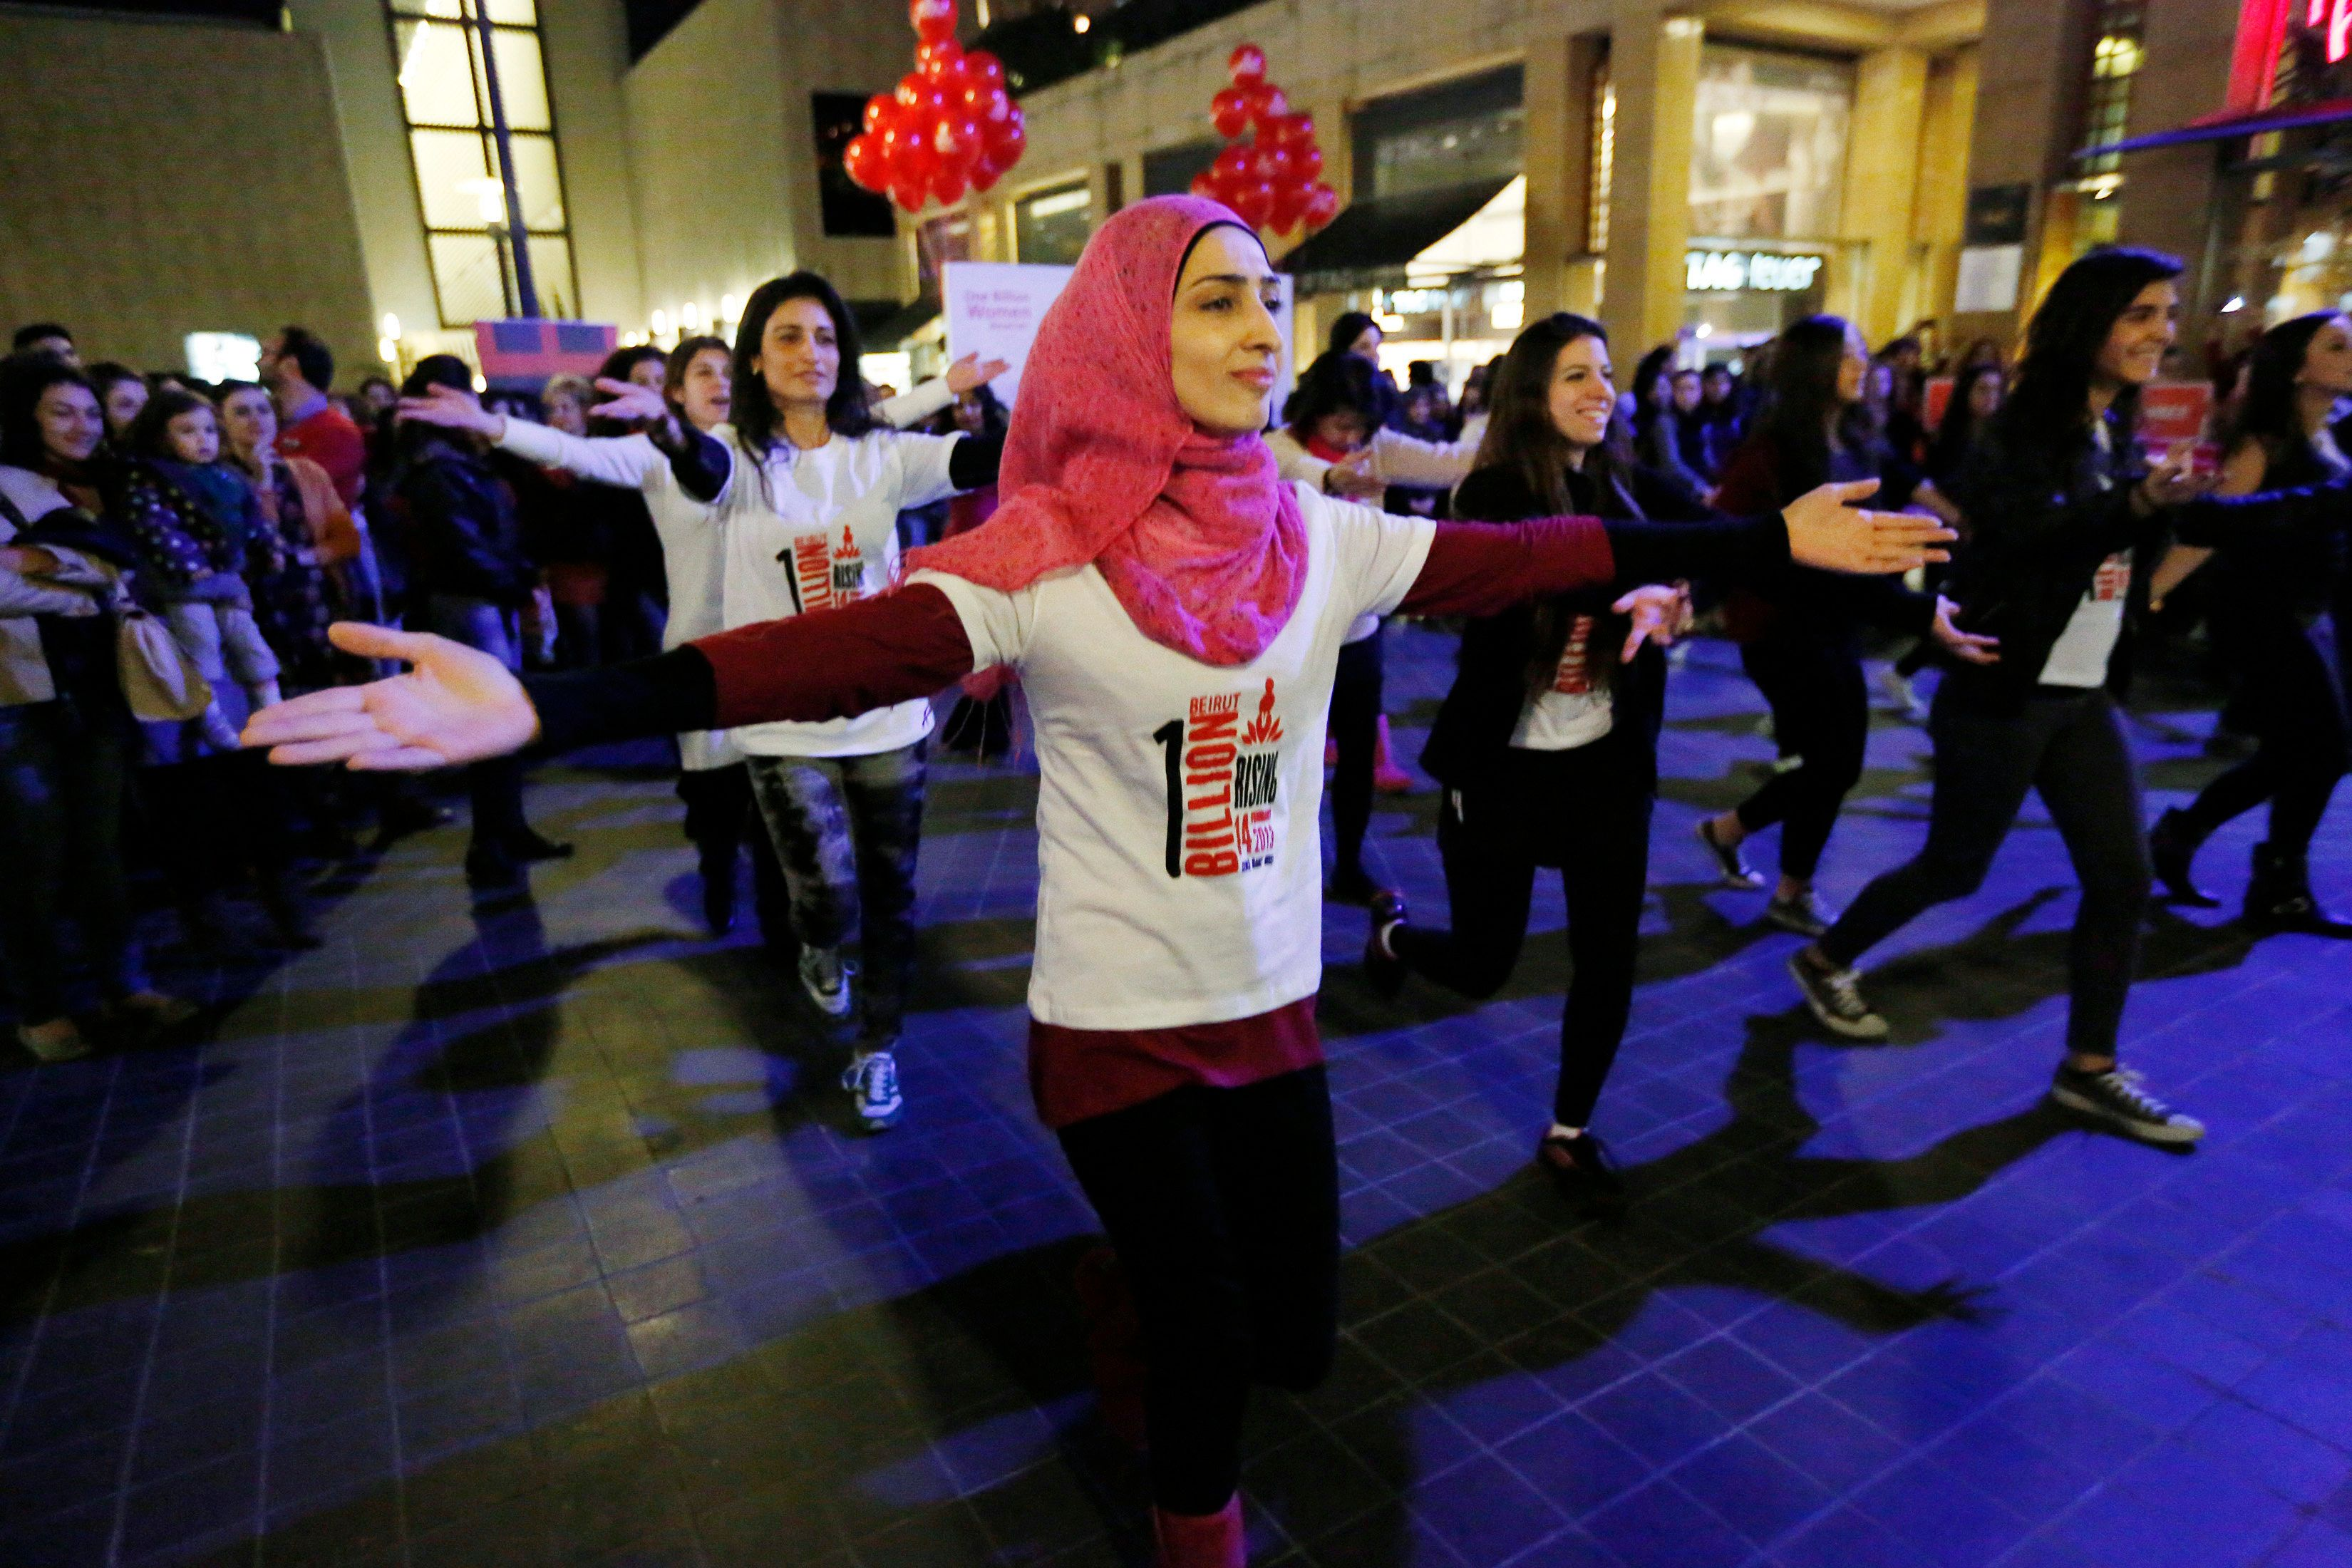 """Women dance to the theme song of the """"One Billion Rising"""" campaign in Beirut February 14, 2013. """"One Billion Rising"""" is a campaign aimed to call an end to violence against women and girls, according to the organisers. REUTERS/Jamal Saidi       (LEBANON - Tags: CIVIL UNREST SOCIETY)"""